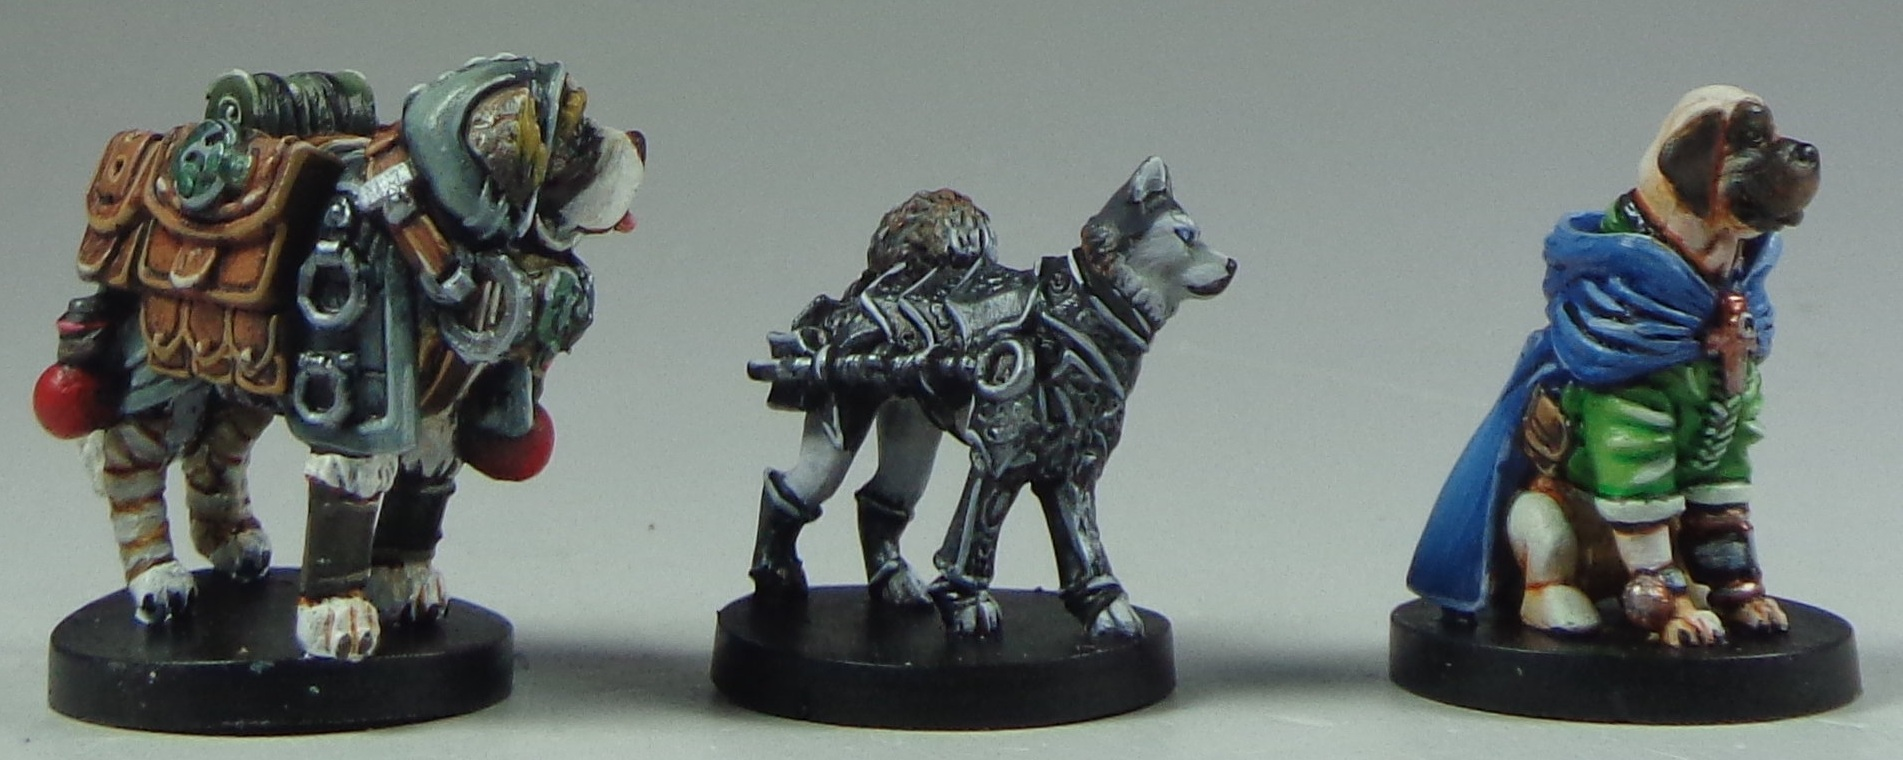 Paintedfigs+Miniature+Painting+Service+KL+Dungeons+%26+Doggies+%287%29.jpg